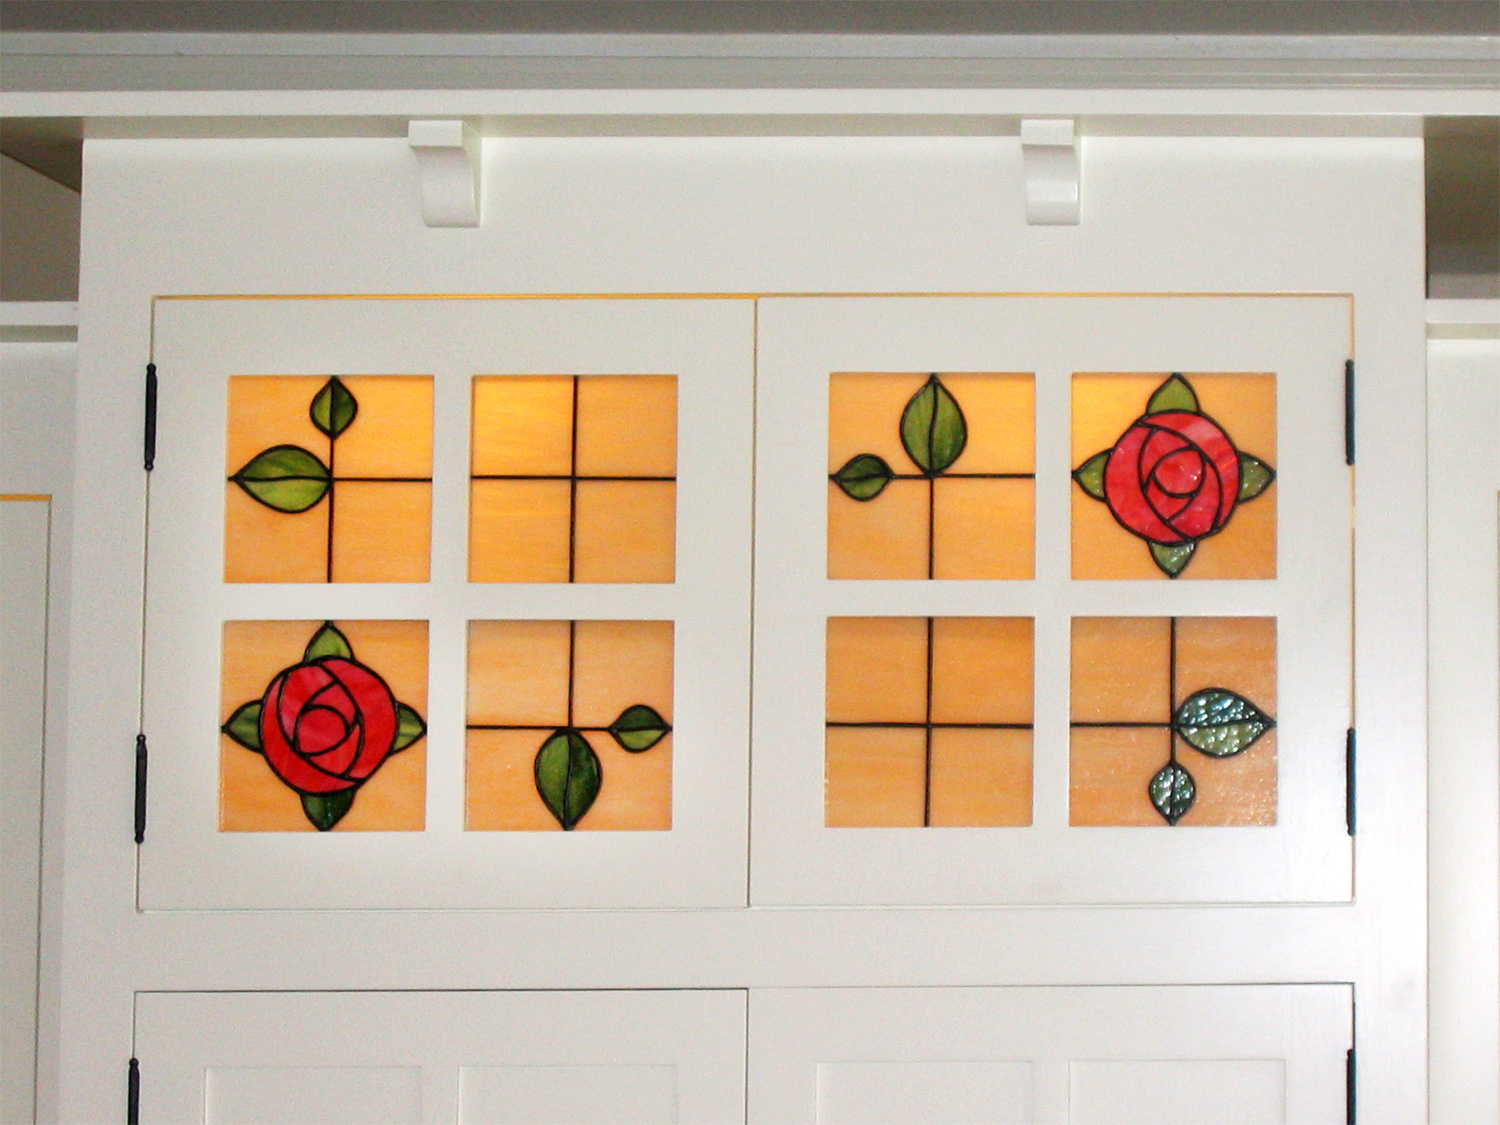 flower floral rose craftsman leaded glass stained glass window palo alto atherton california san francisco san jose.jpg